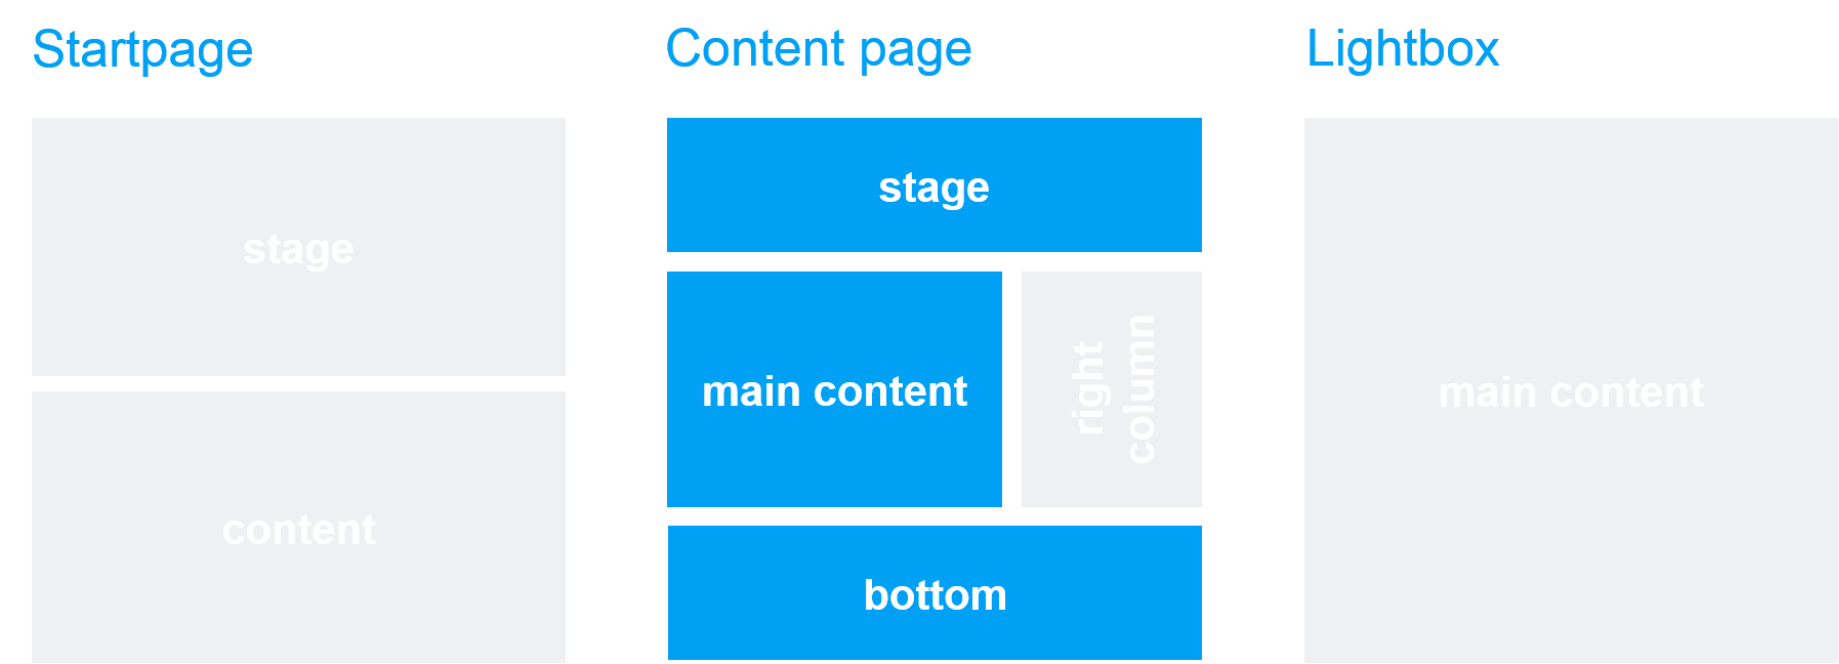 Template and page area: Hotspot Image